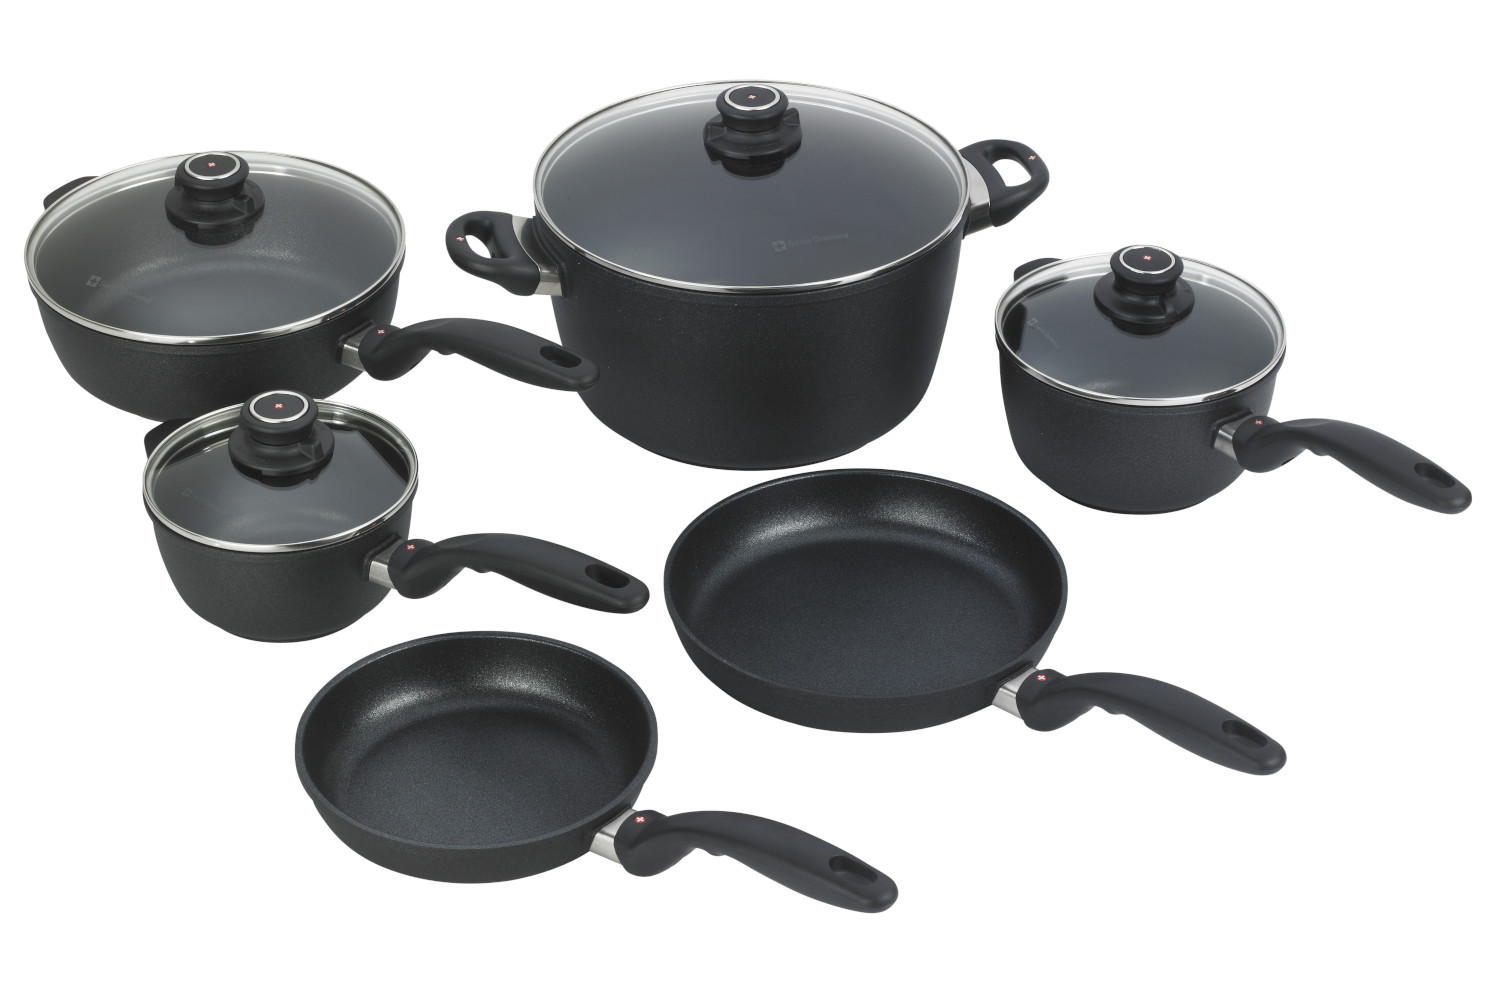 Swiss Diamond Classic+ XD Nonstick 10 Piece Cookware Set